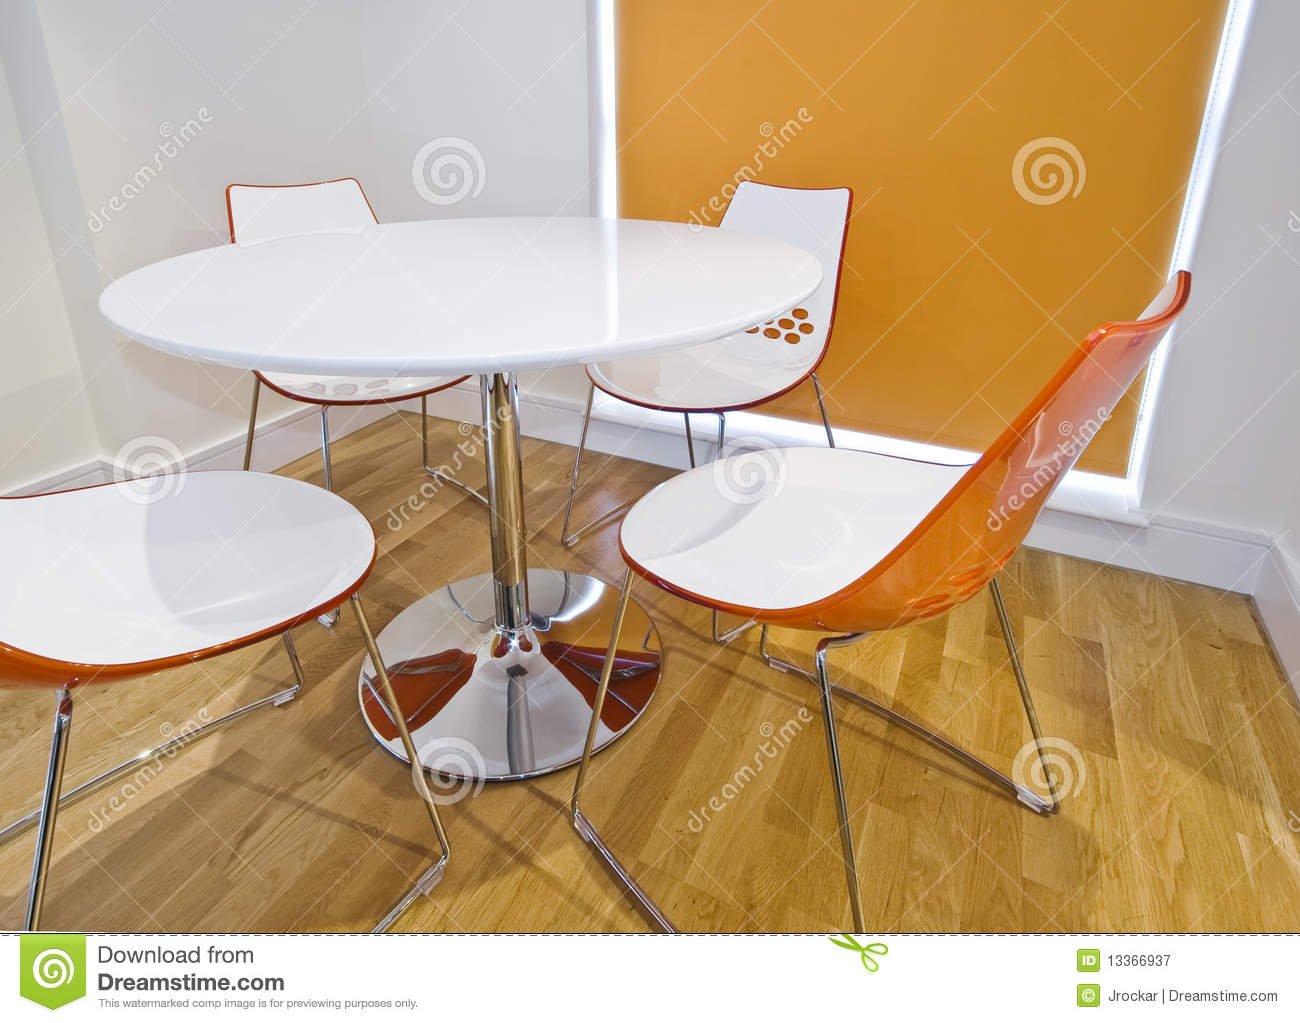 Modern Colorful Dining Table Stock Image - Image of four ...